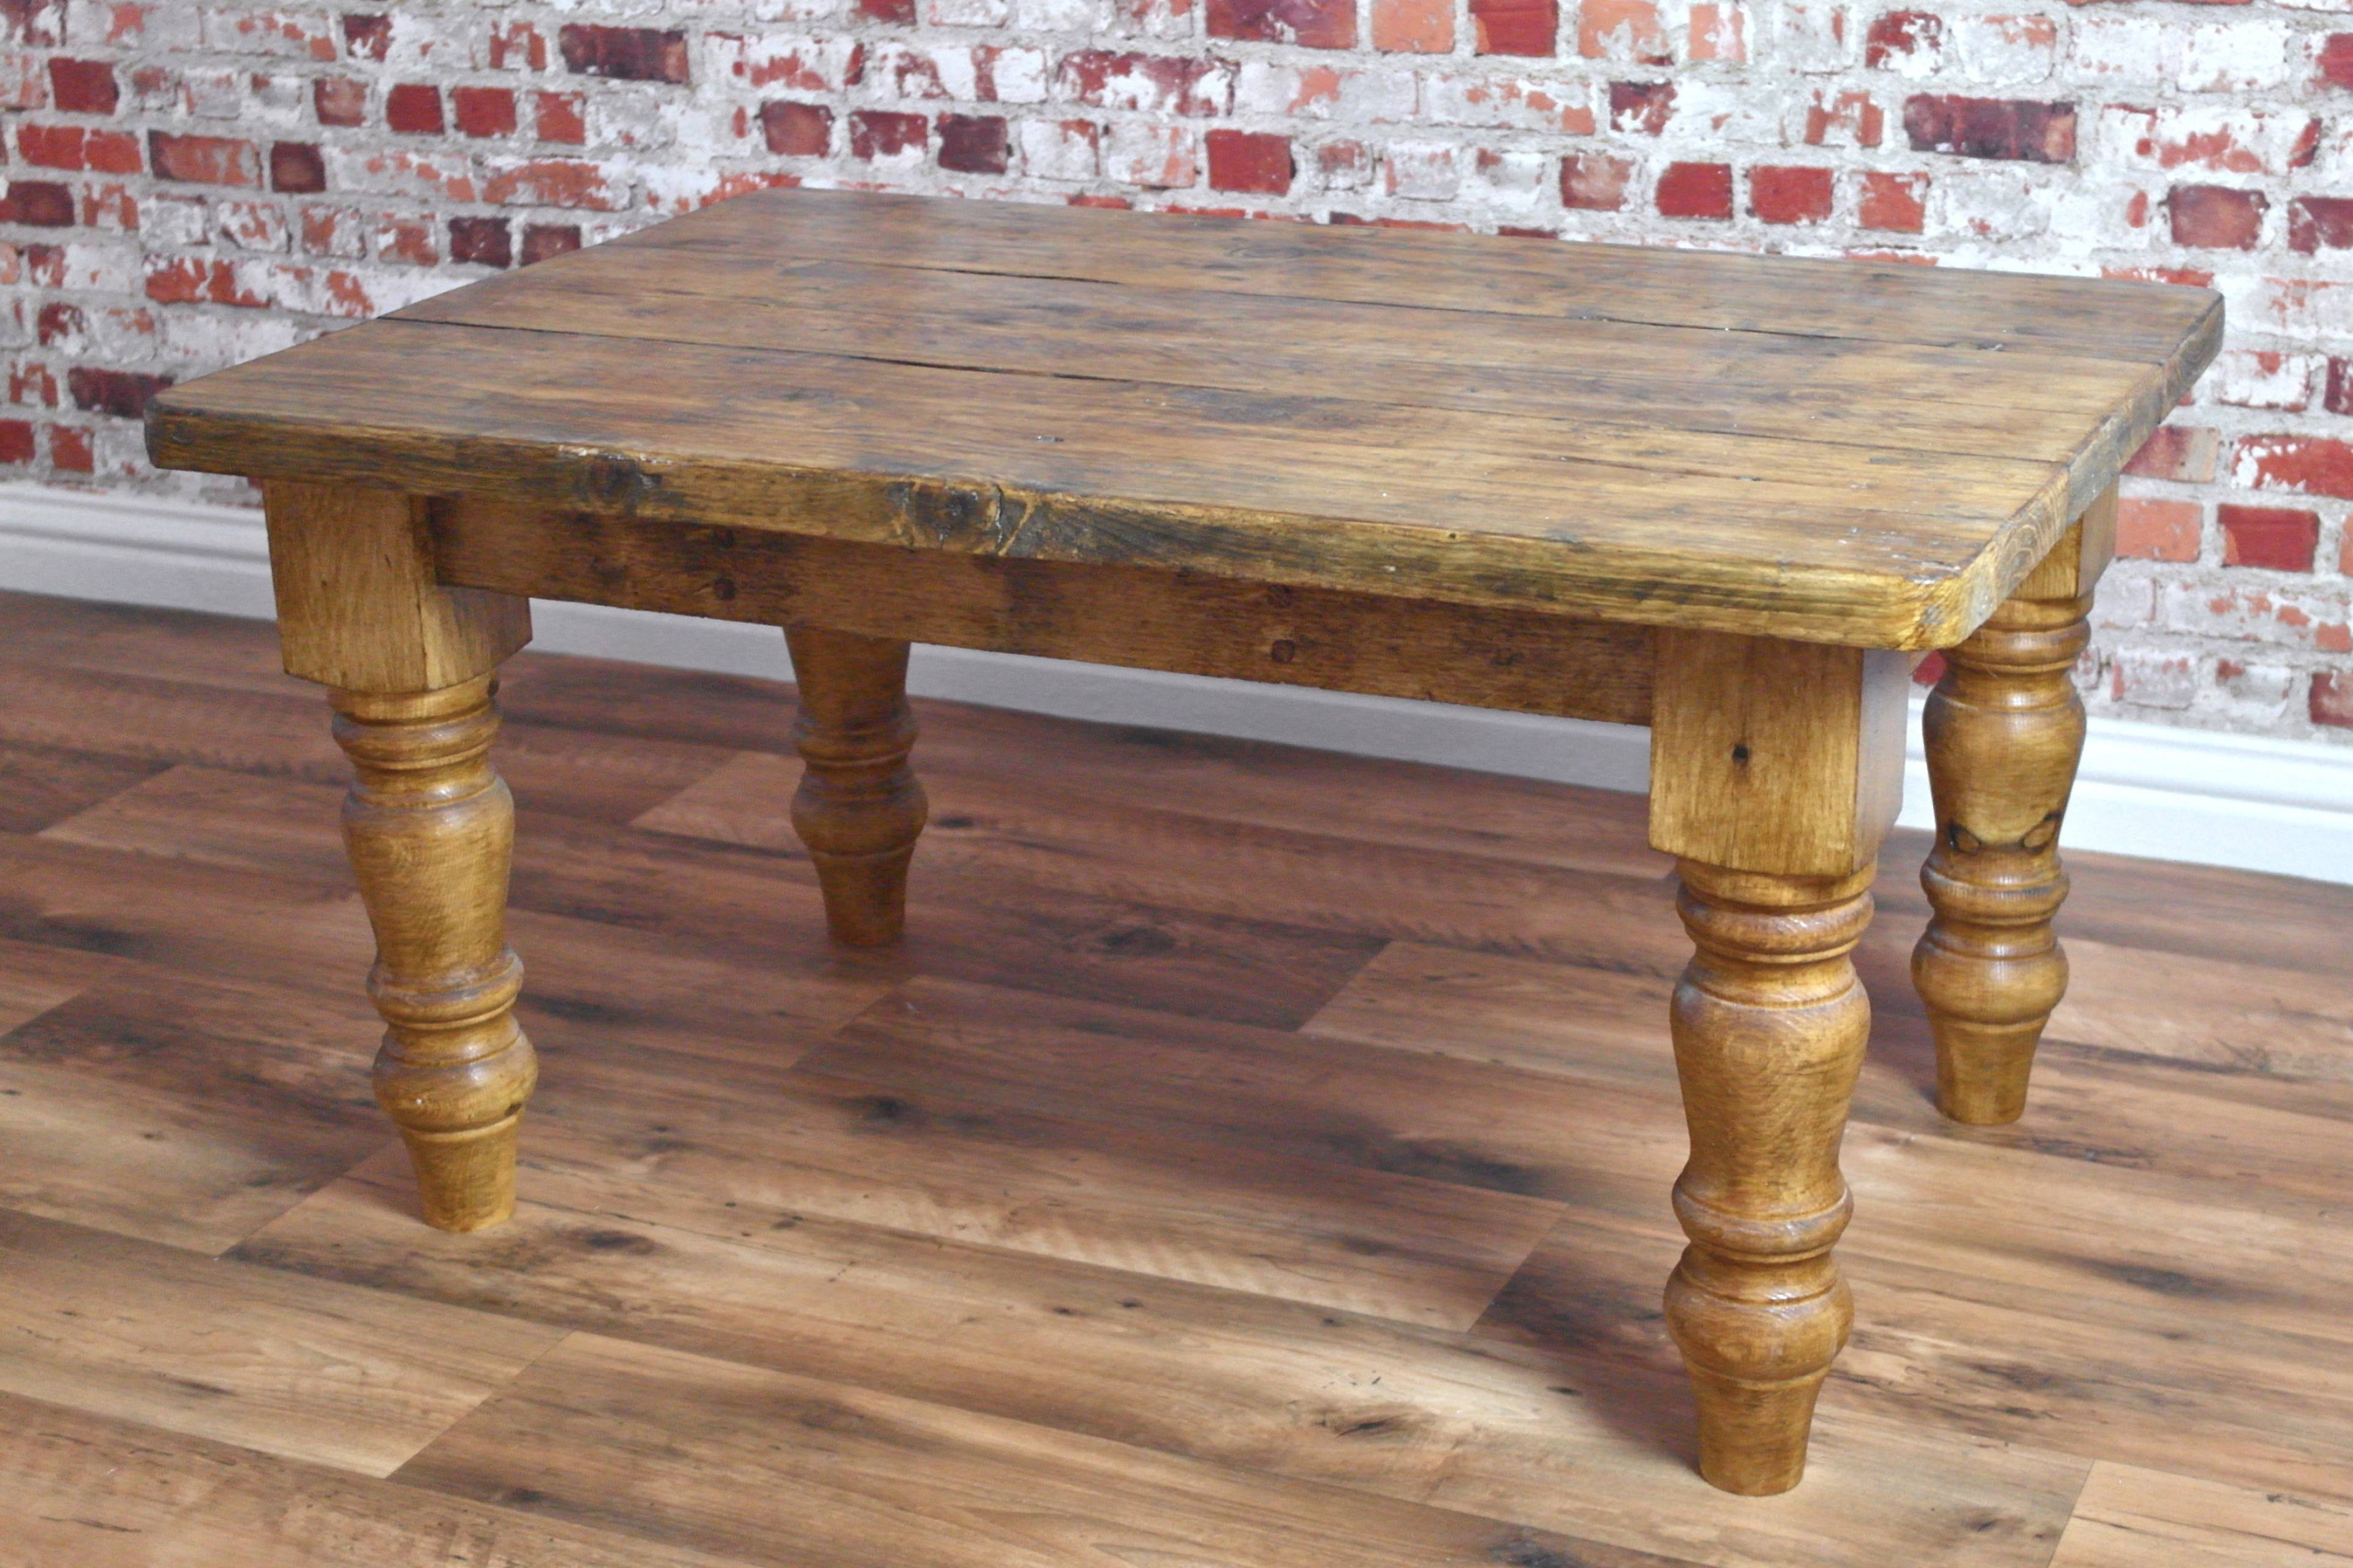 Large Rustic Coffee Table – Rustic Coffee Tables On Pinterest in Antique Pine Coffee Tables (Image 19 of 30)